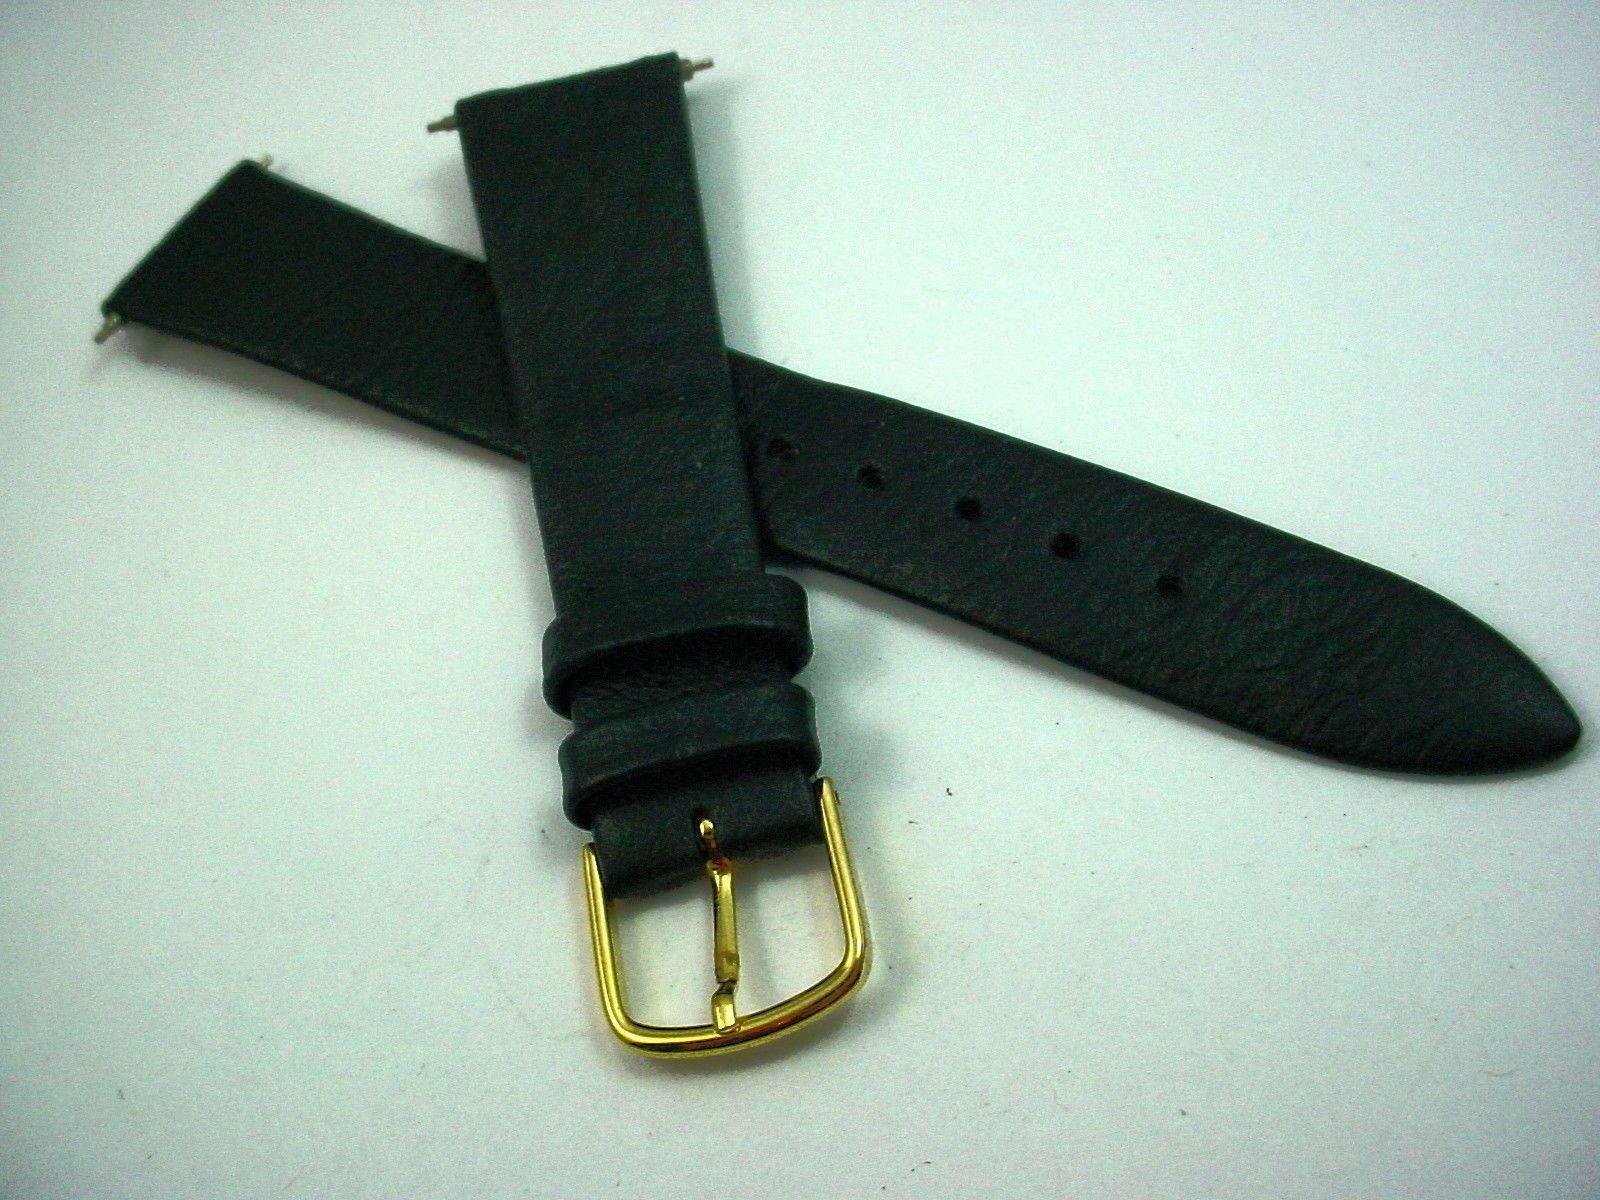 Speidel 18mm Mens Vintage Watch Band Black Leather Gold Tone Buckle New Old Stck